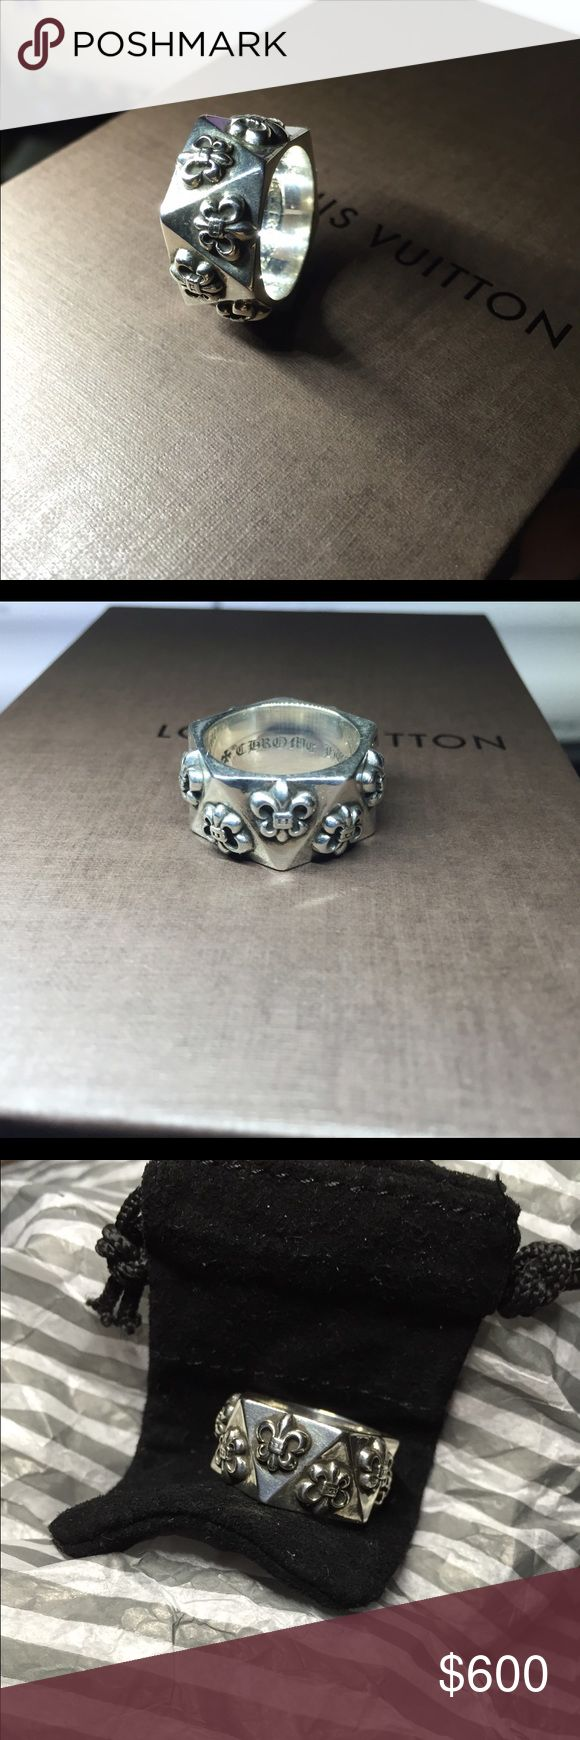 Chrome hearts ring Size 7. AUTH AUTH AUTH   Comes with the dustbag. Chrome Hearts Jewelry Rings